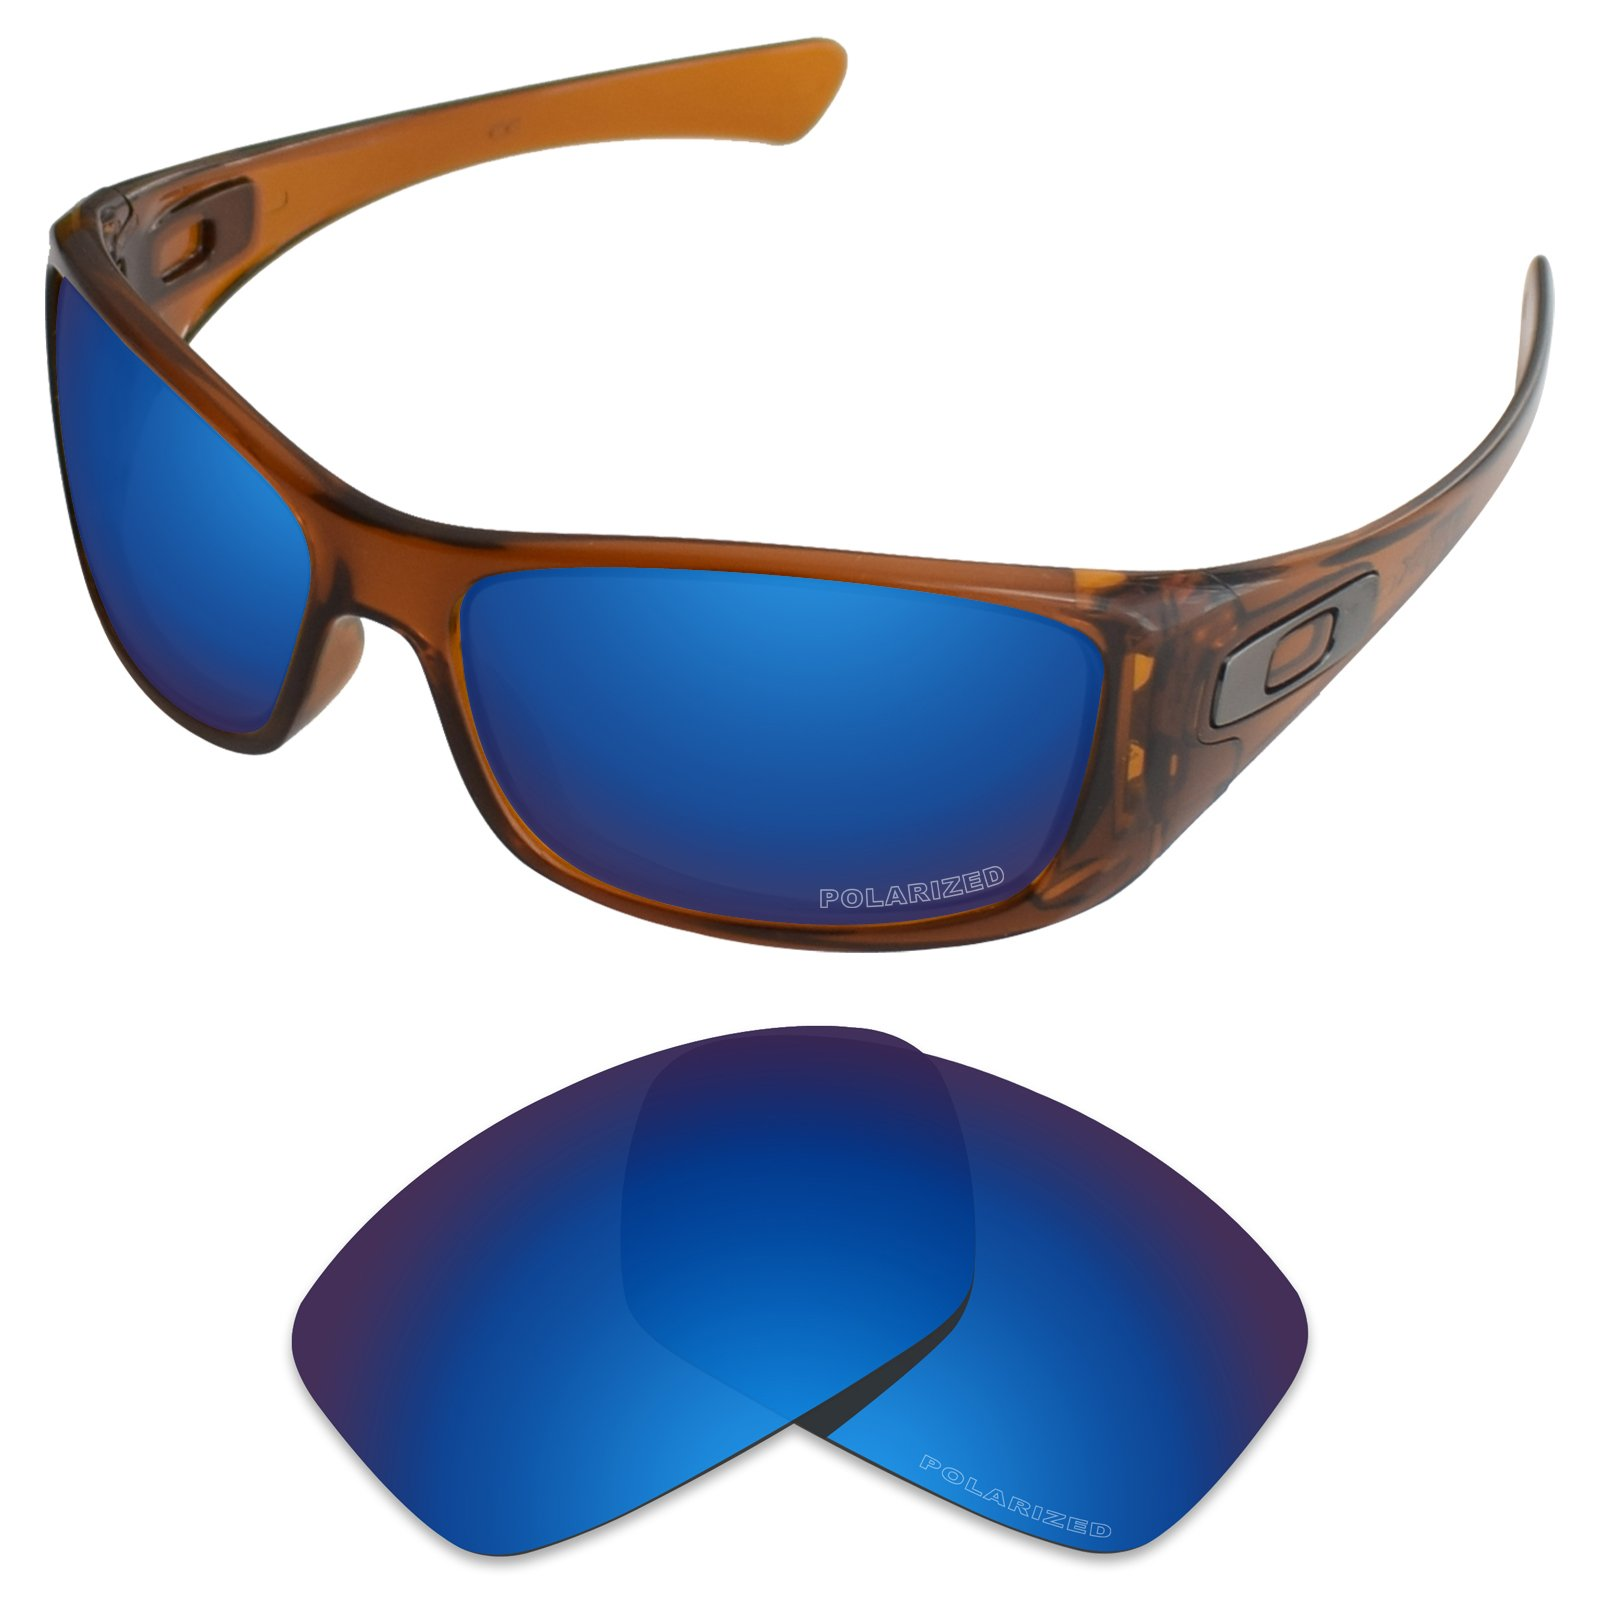 Tintart Performance Replacement Lenses for Oakley Hijinx Sunglass Polarized Etched-Sapphire Blue by Tintart